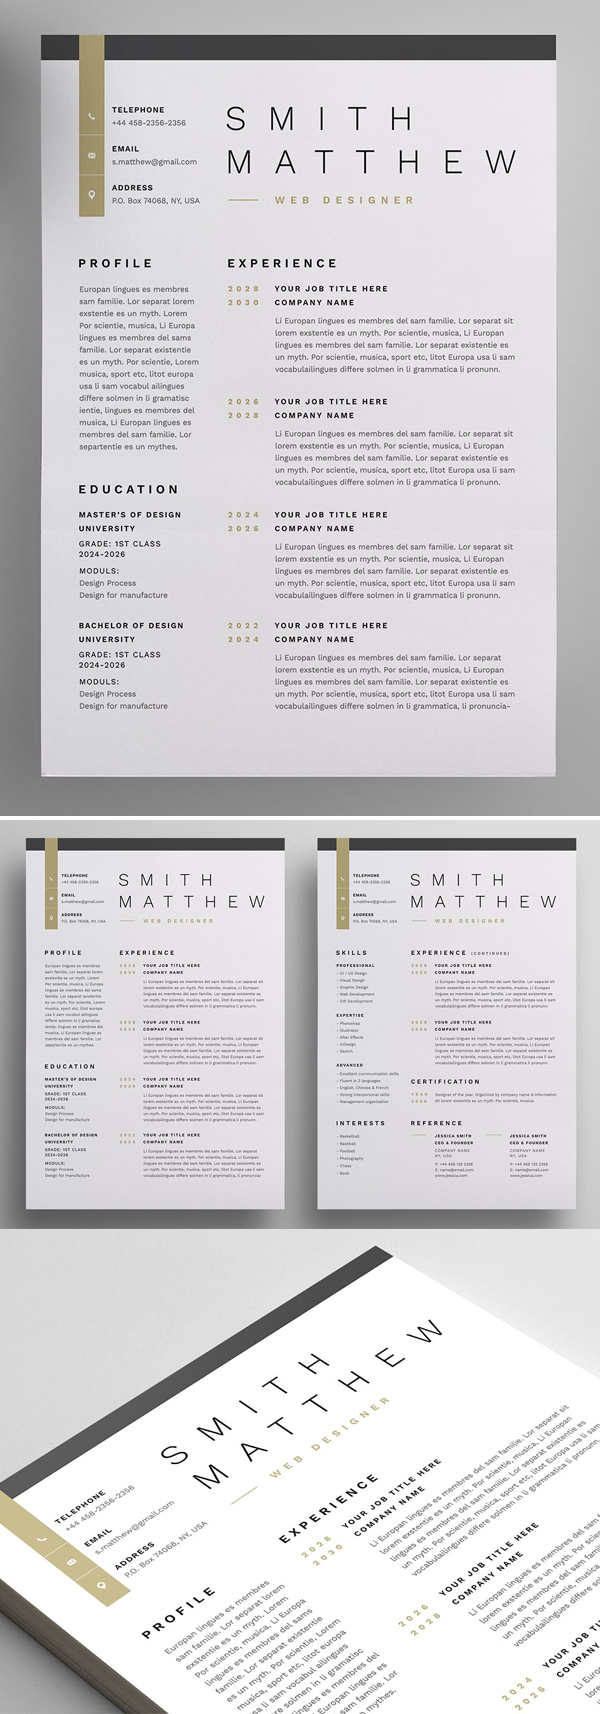 Resume and Letterhead Design